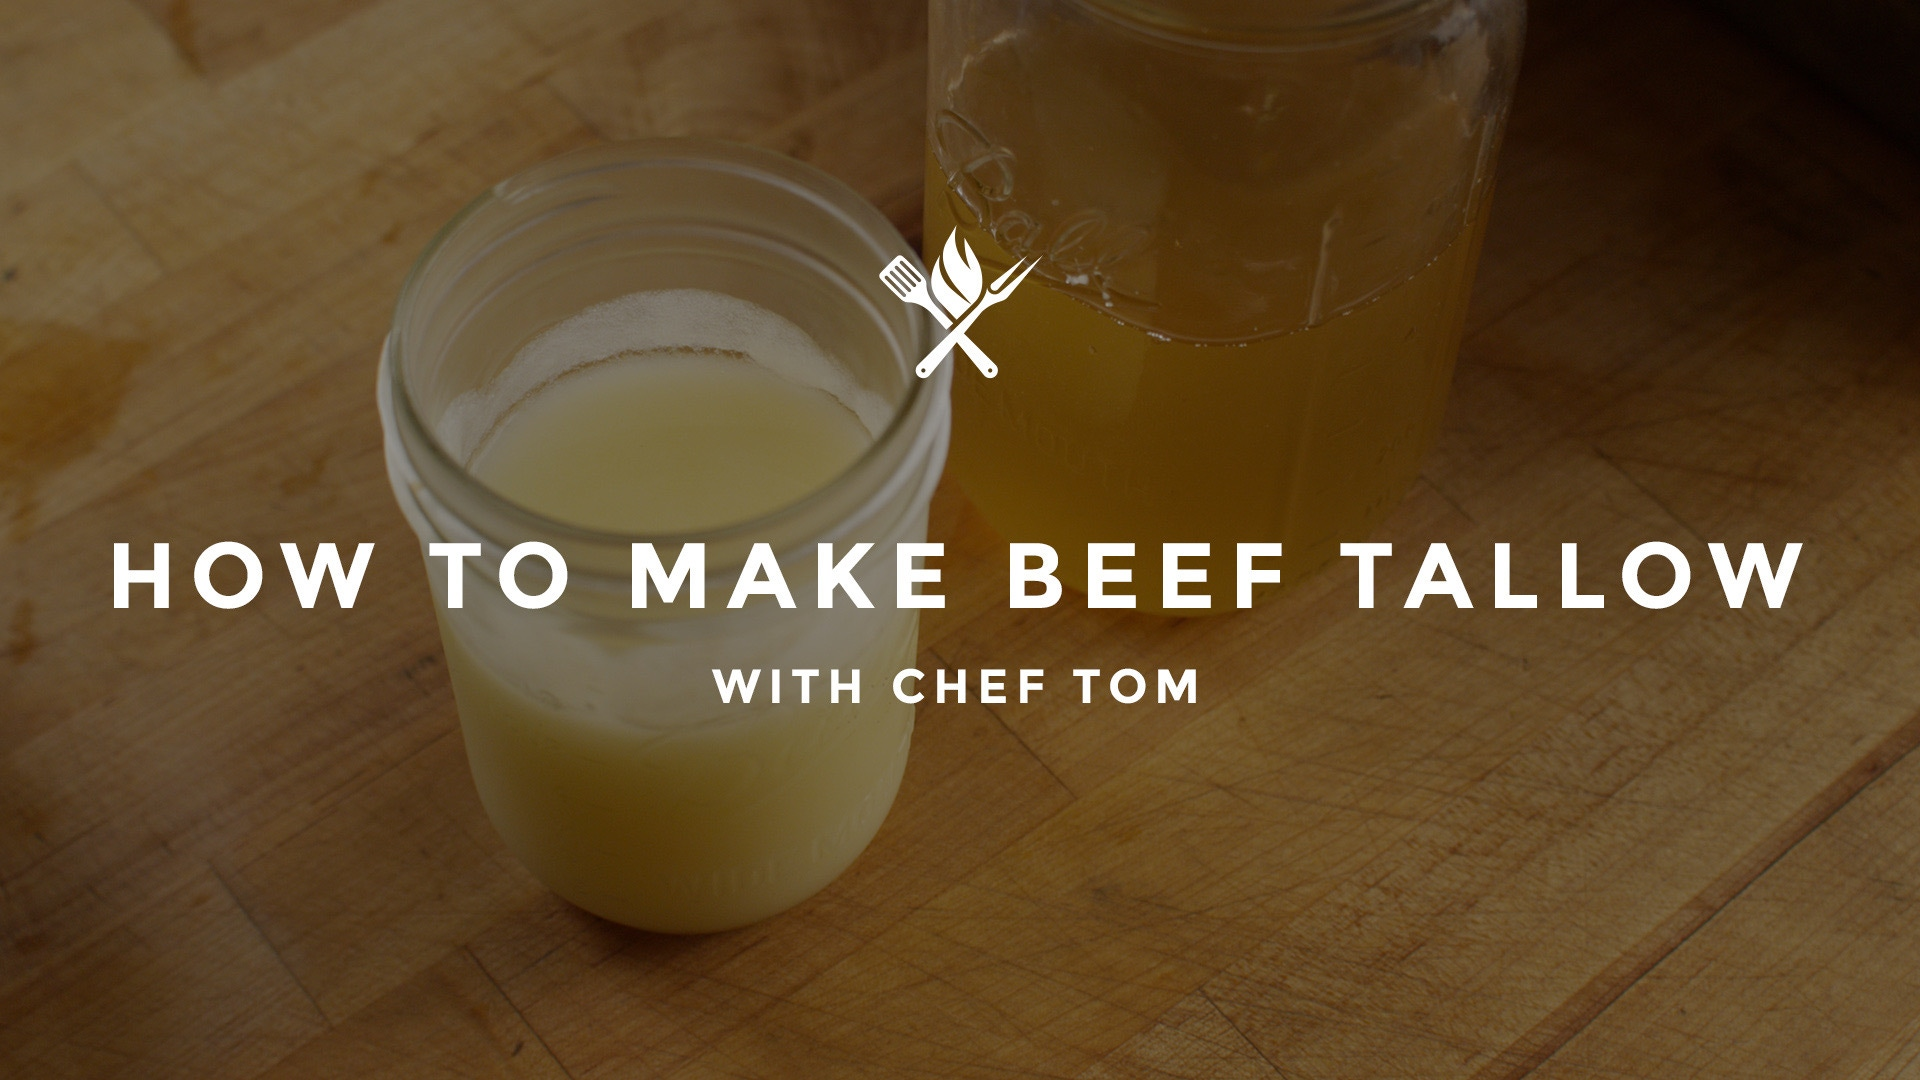 How to Make Beef Tallow From Your Brisket Trimmings